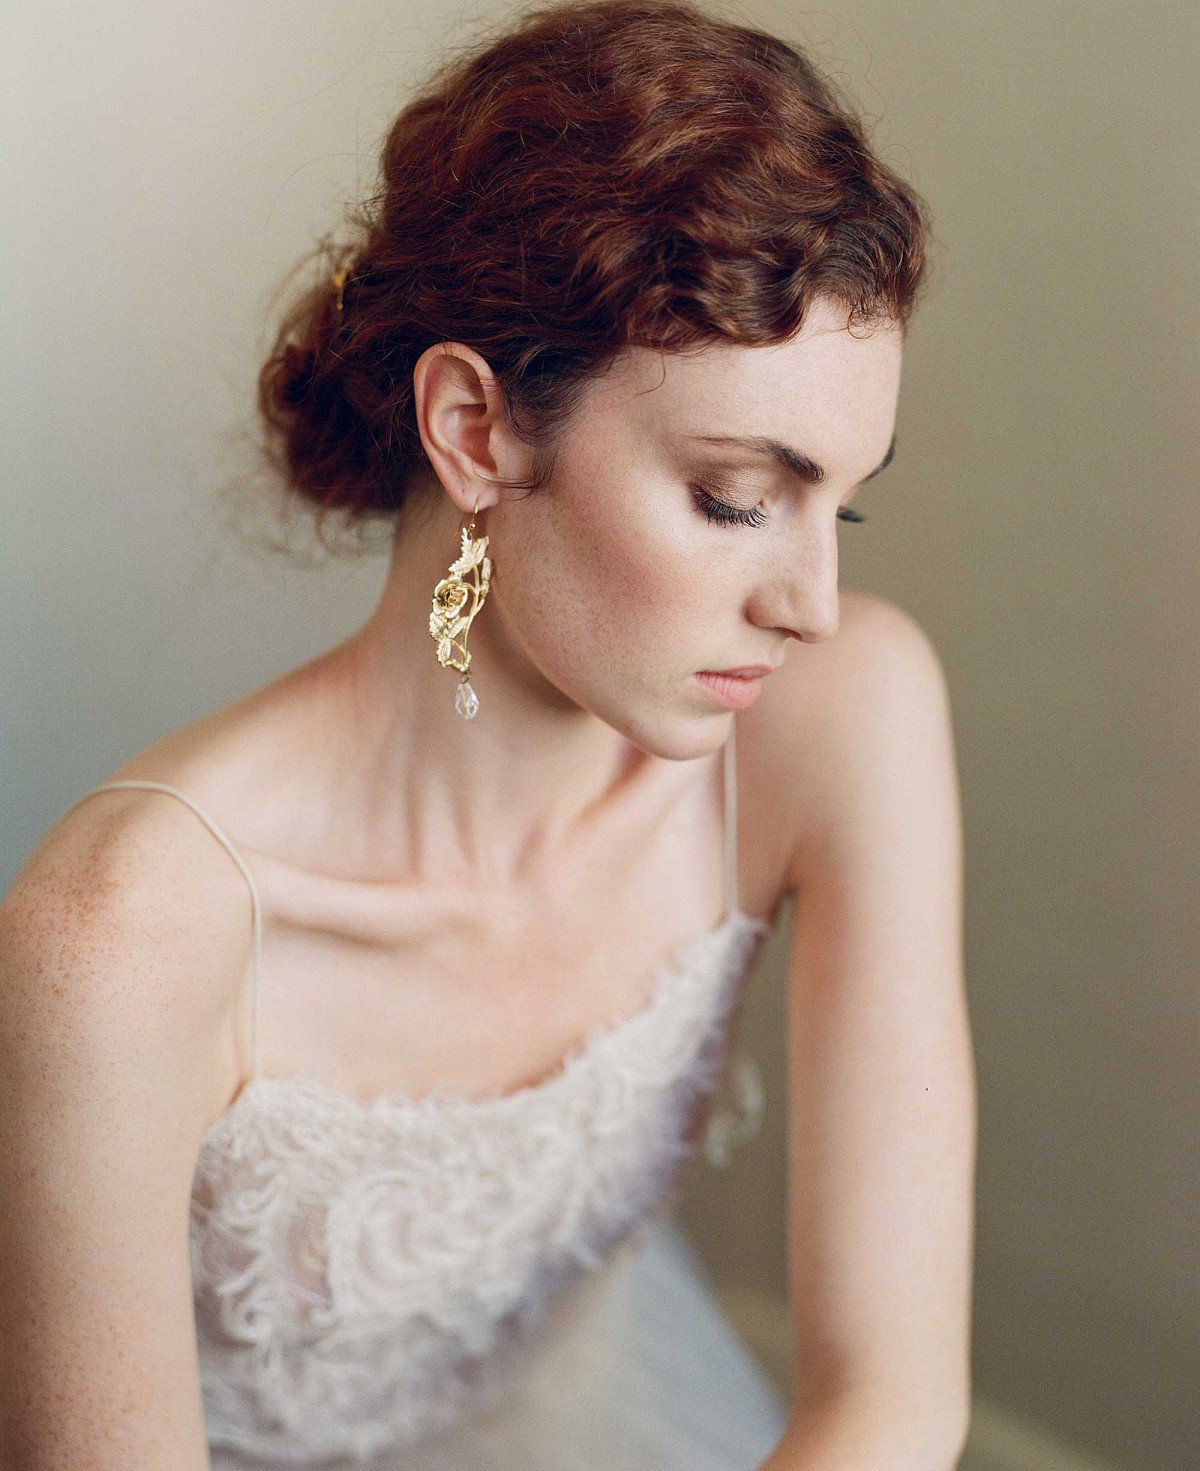 Bridal Fashion Week with the Lace Atelier and Samuelle Couture